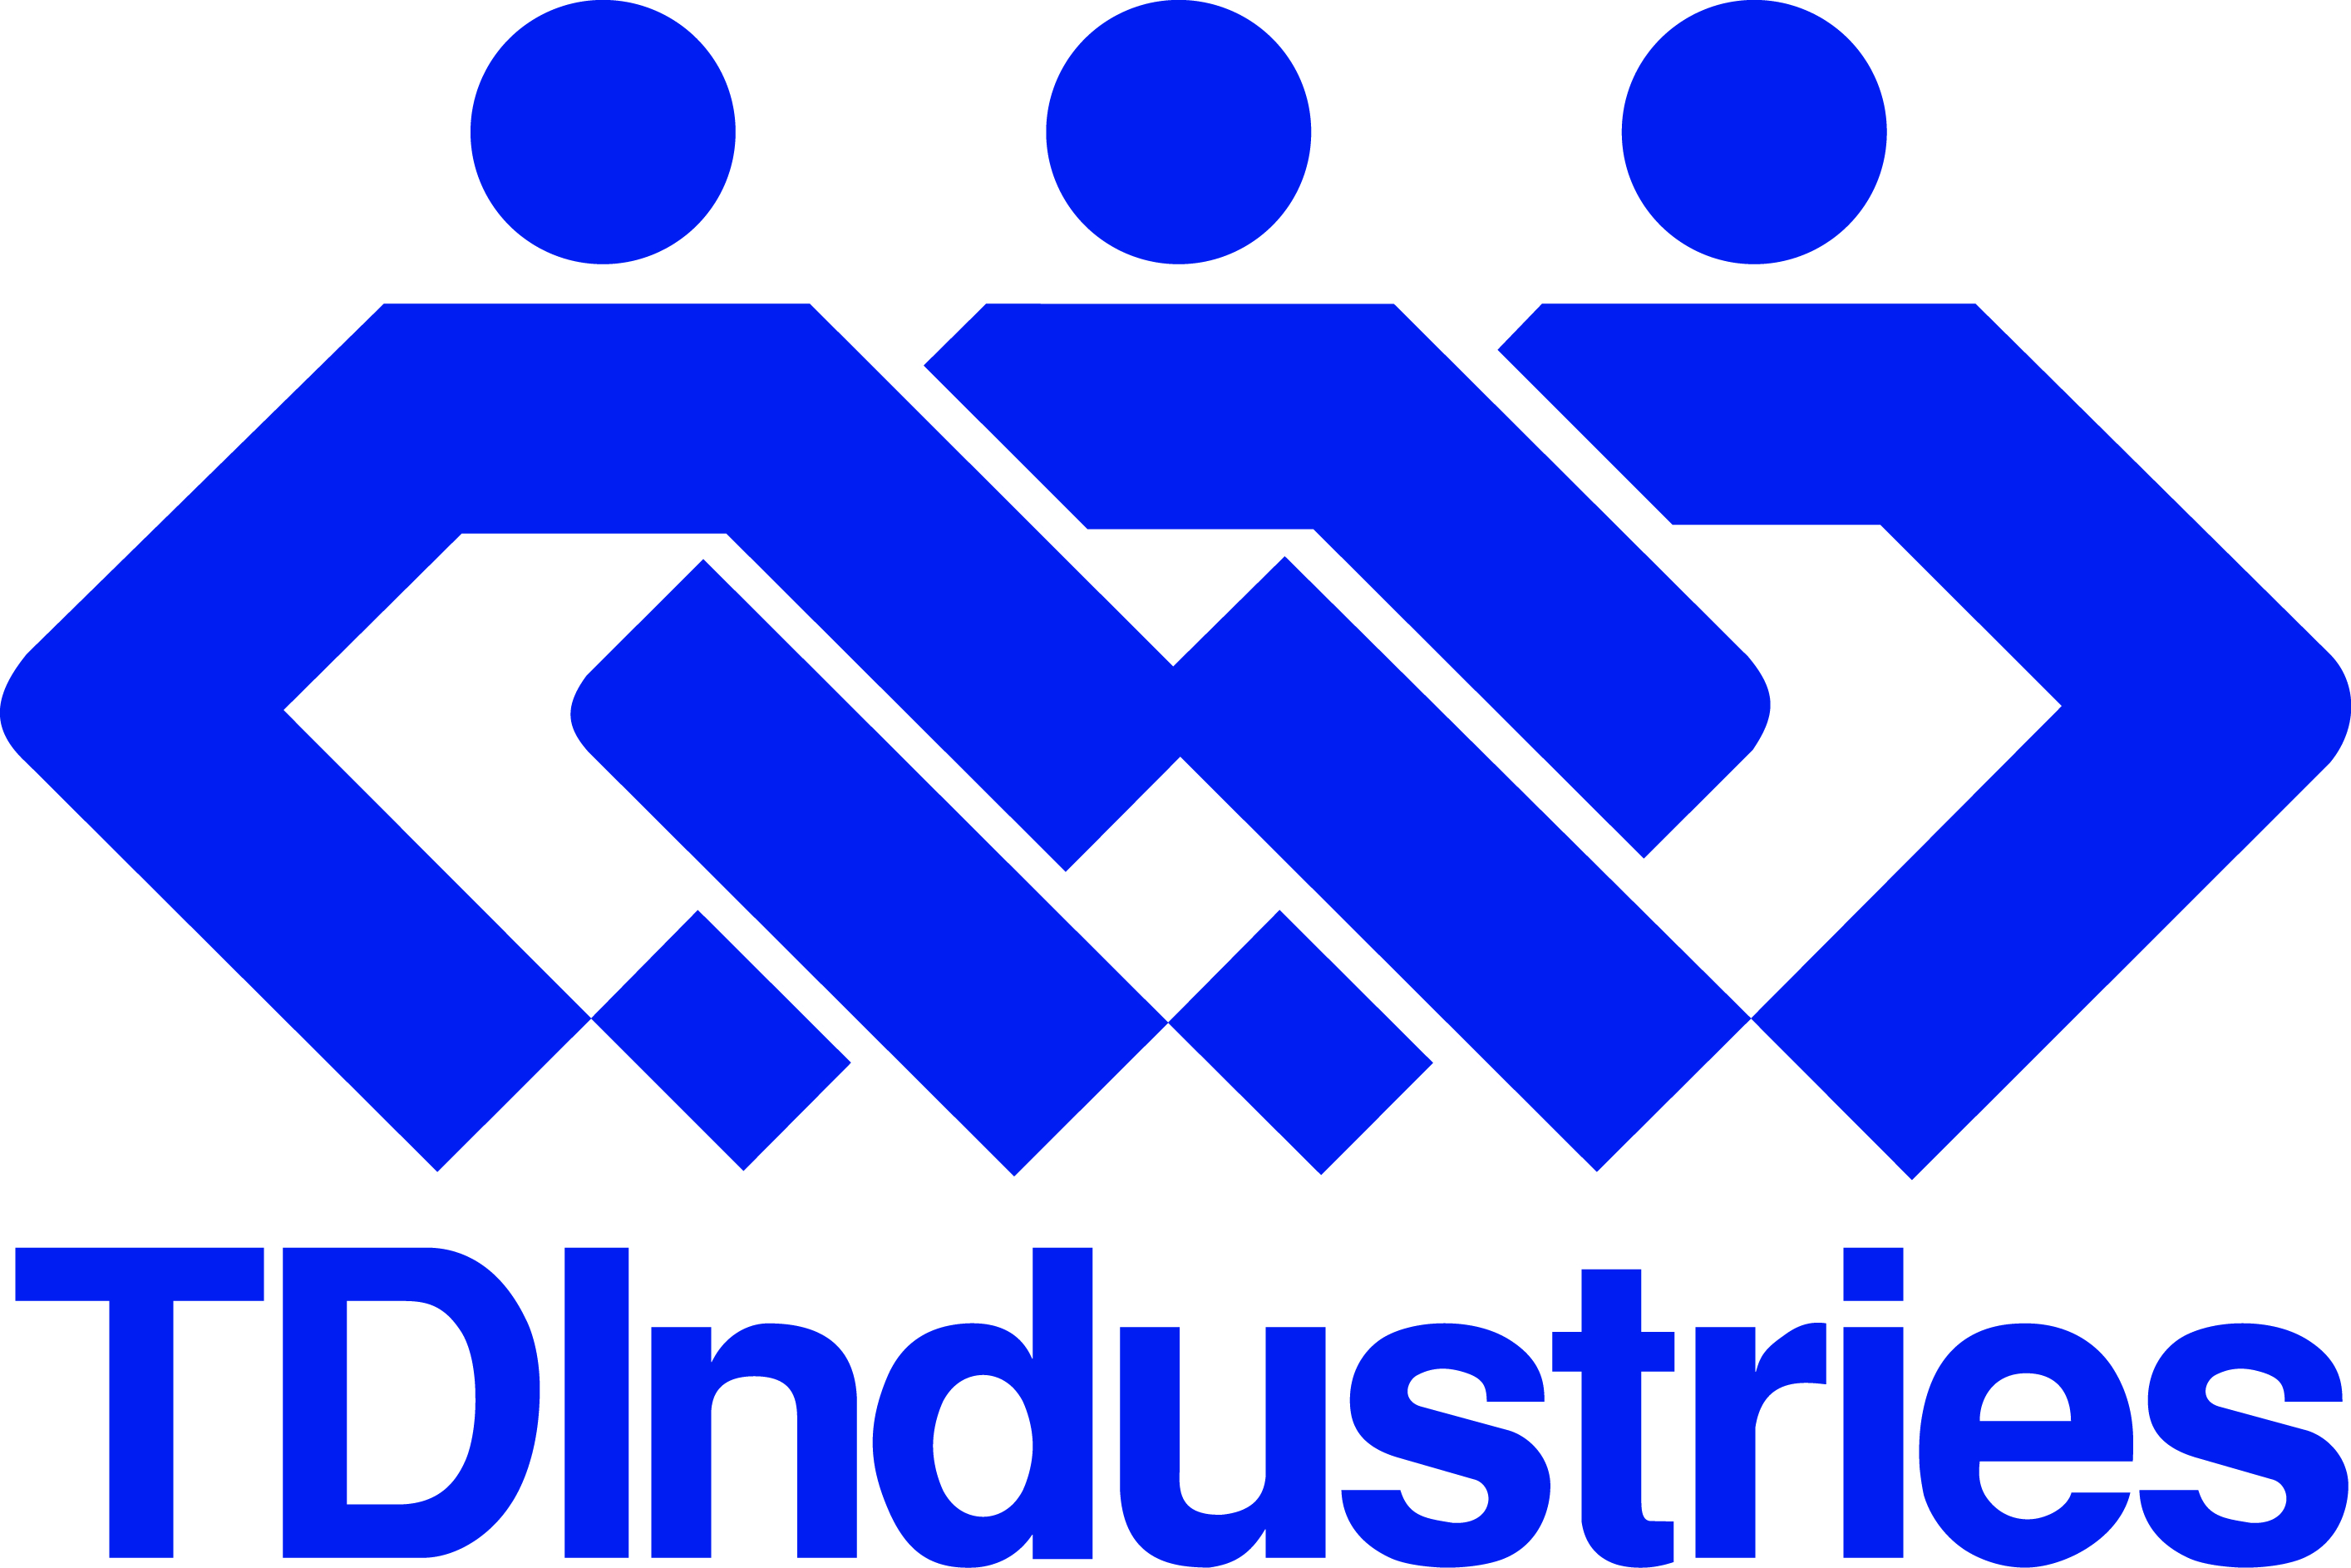 CELEBRATE ARCHITECTURE - TDIndustries logo